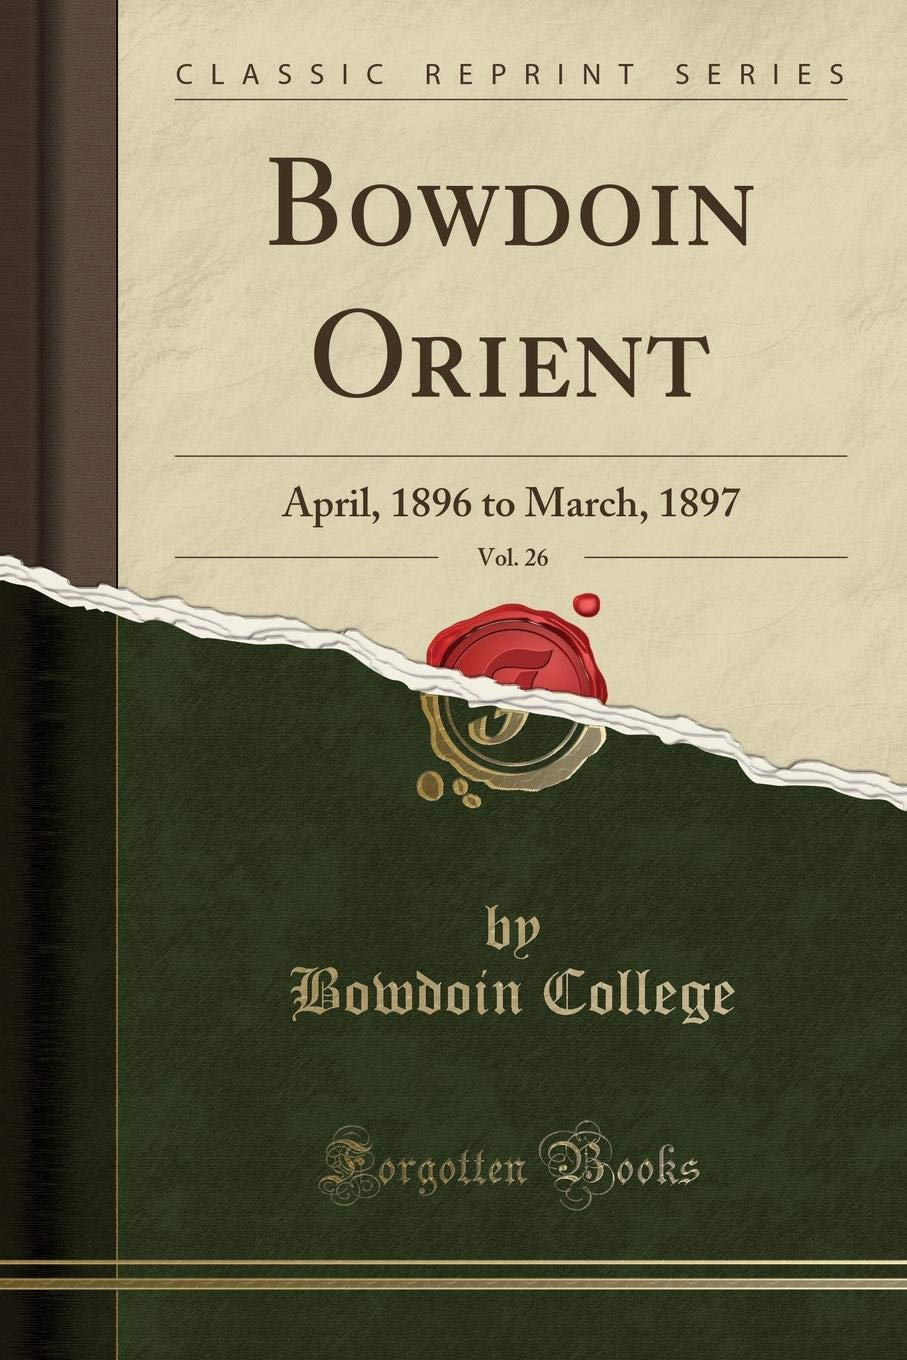 Bowdoin Orient, Vol. 26: April, 1896 to March, 1897 (Classic Reprint) PDF